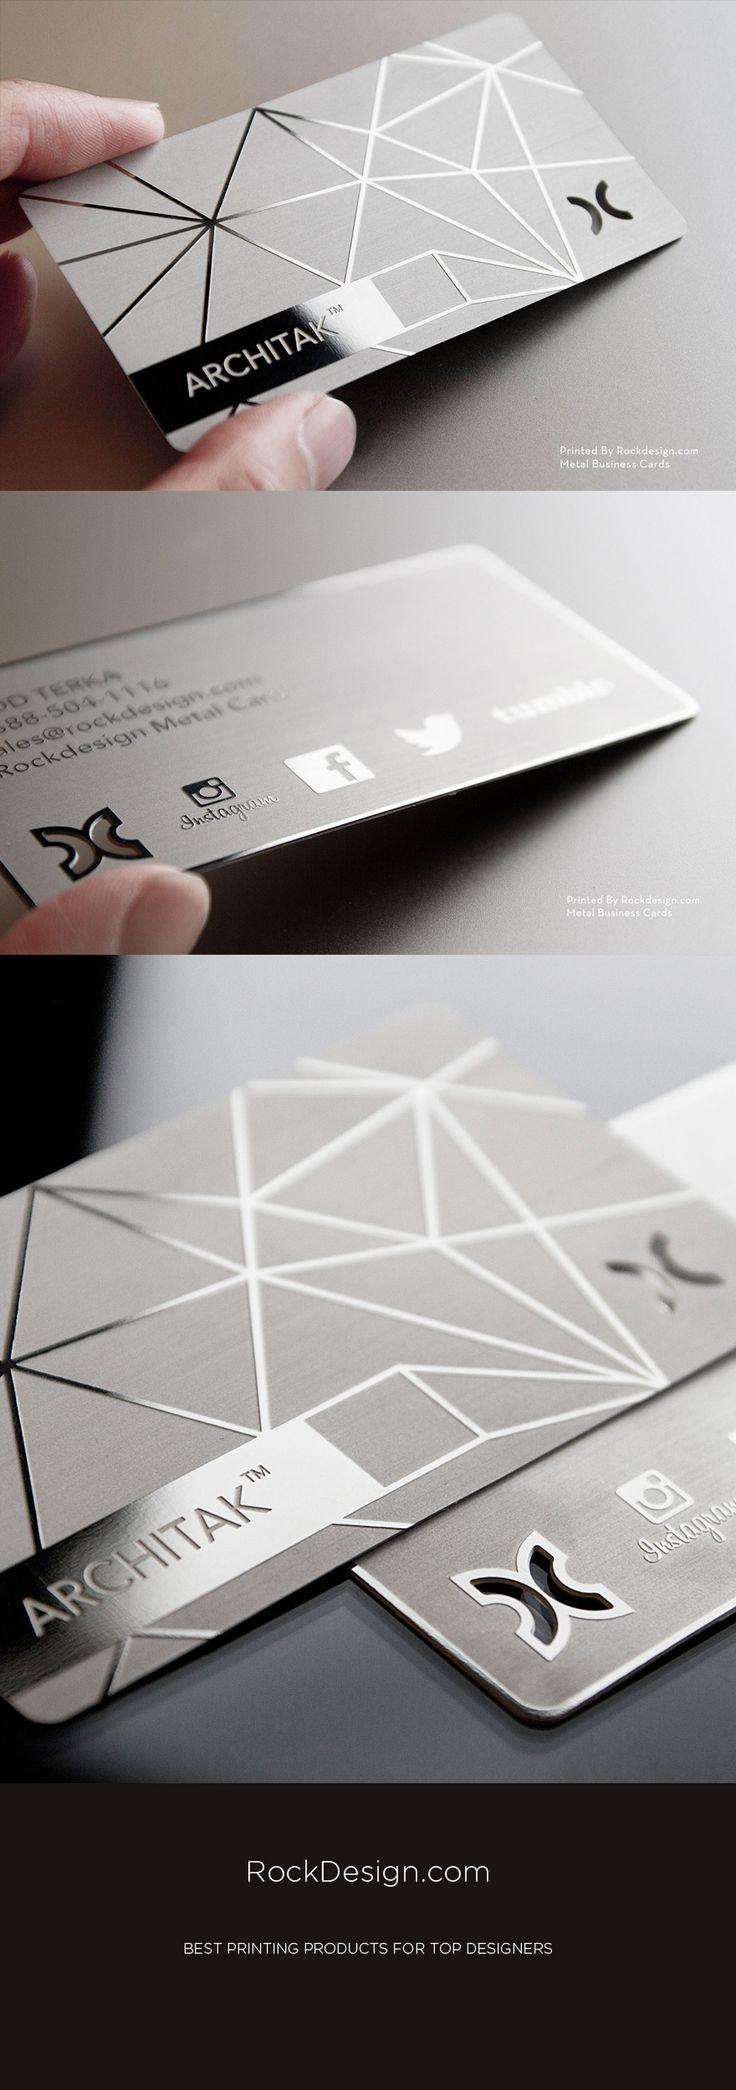 1209 best Business Cards images on Pinterest | Business cards ...